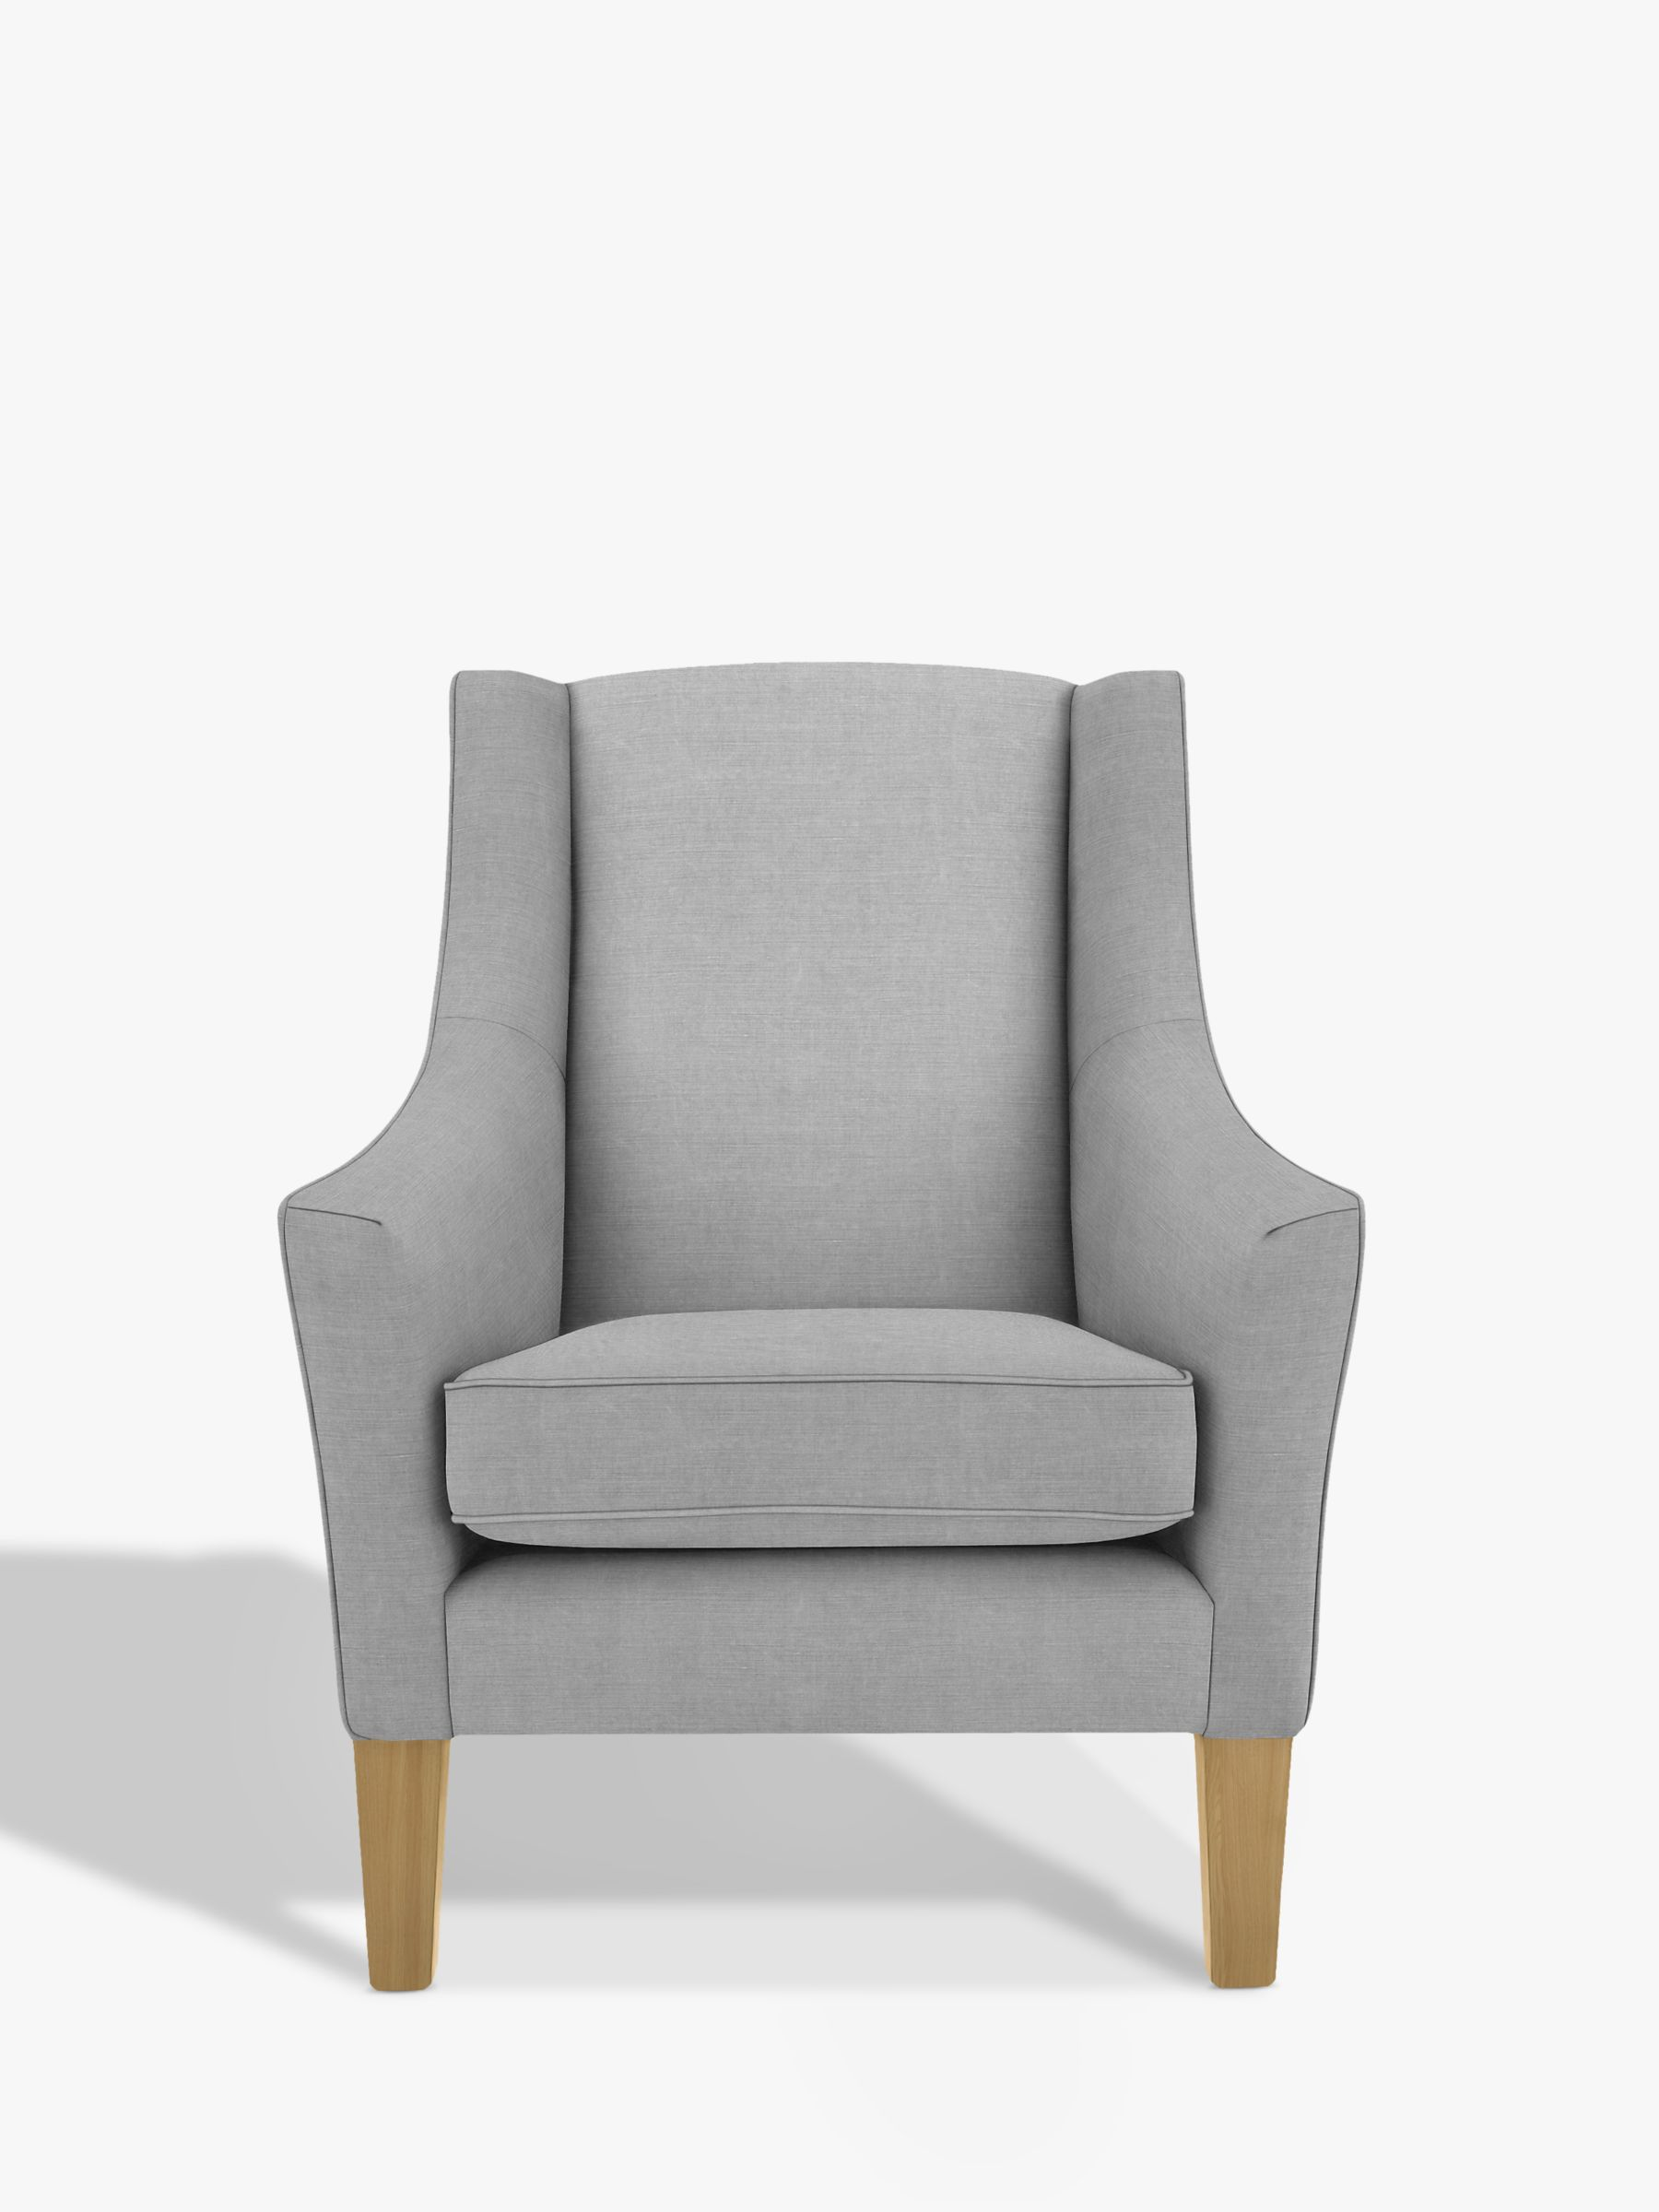 john lewis armchair covers hanging chair the sims 4 mario corin pigeon at